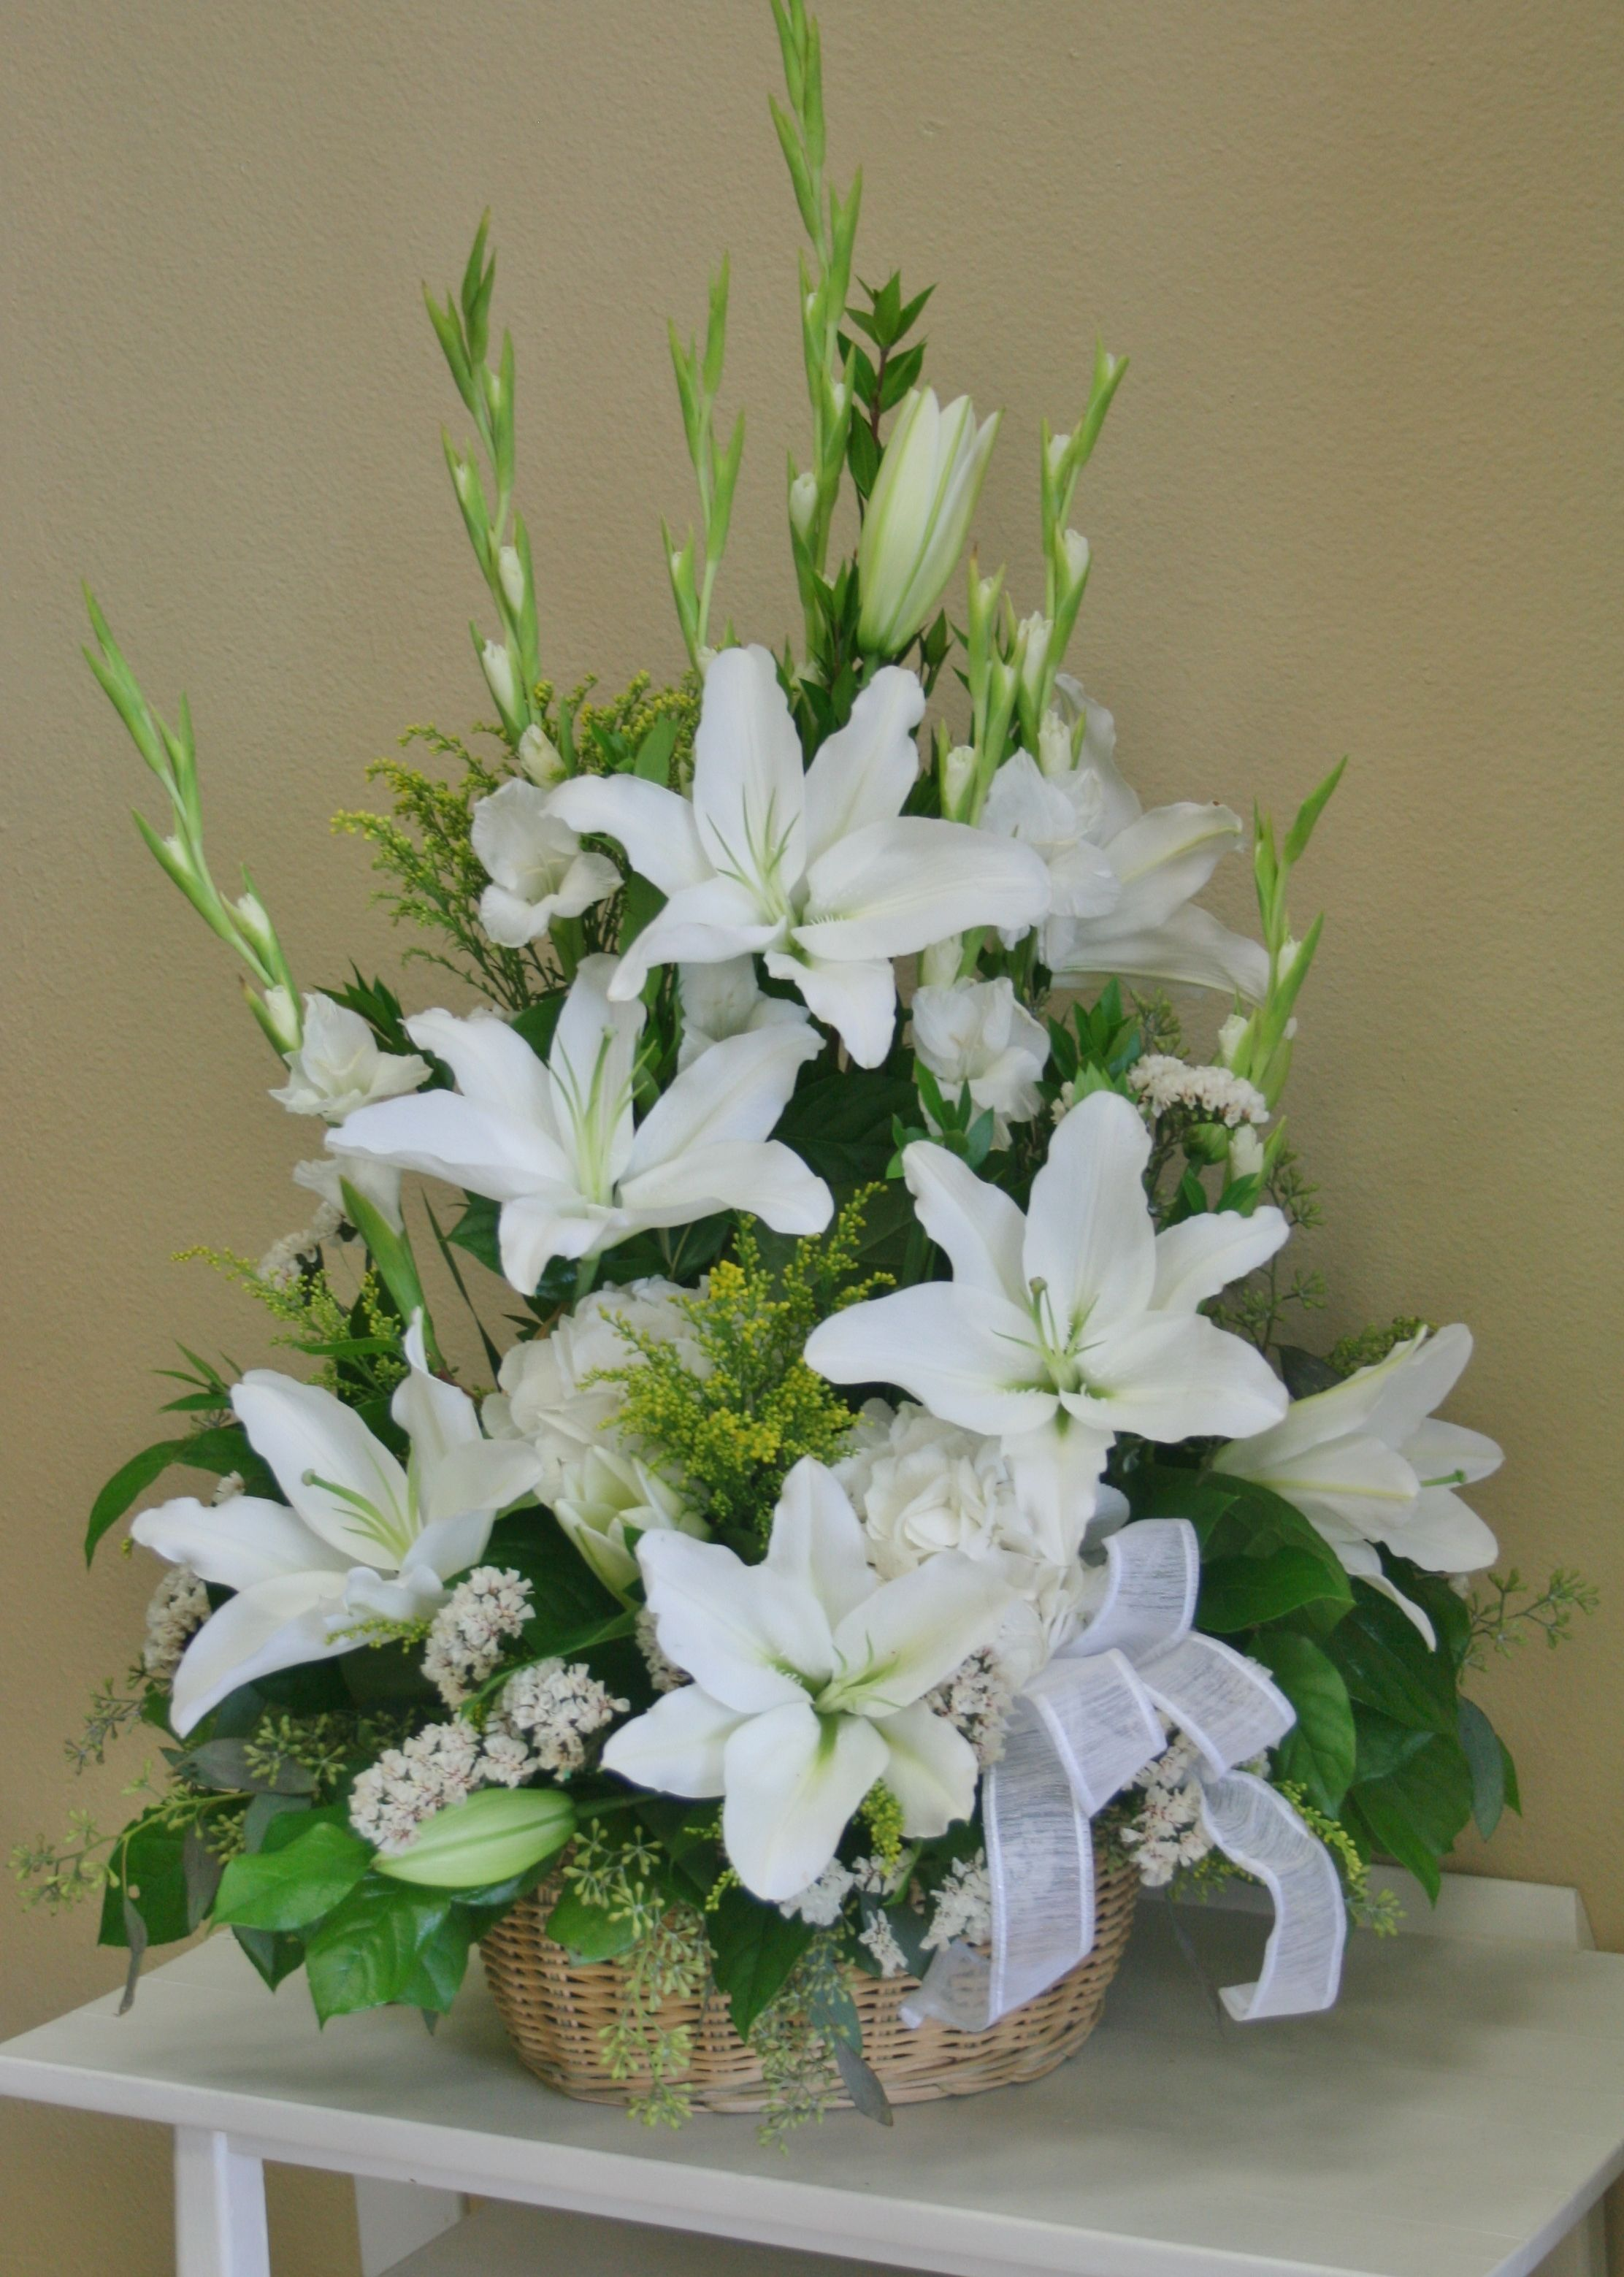 An All White Flower Arrangement Including White Lilies Made By Your